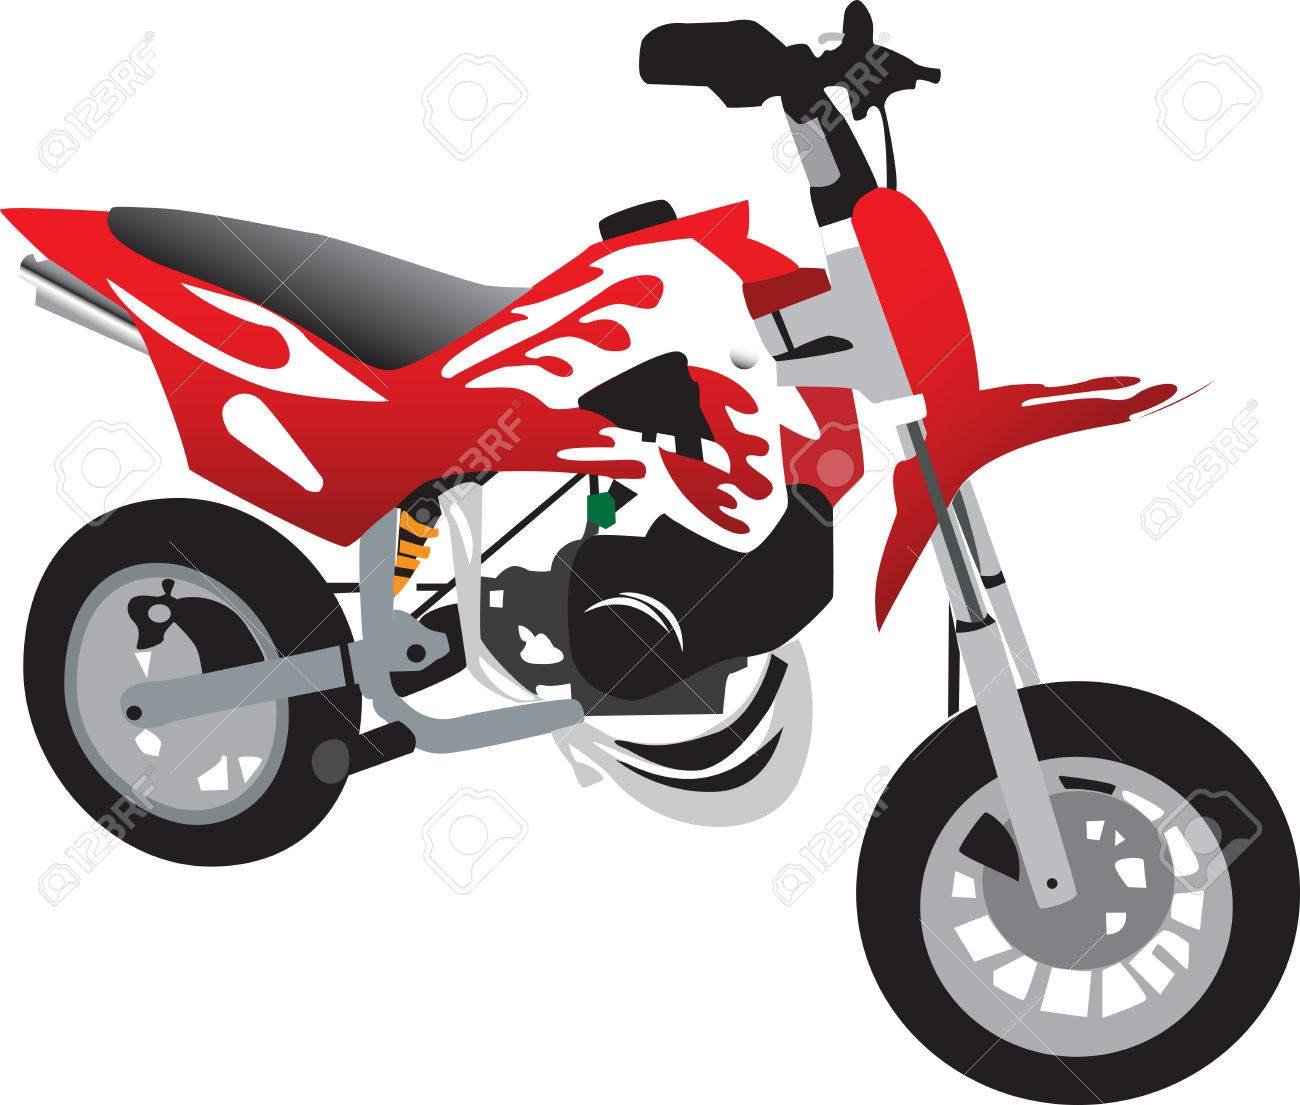 Motorcycle clip art with flames - Toy Motorcycle Red With White Flames Stock Vector 8558216